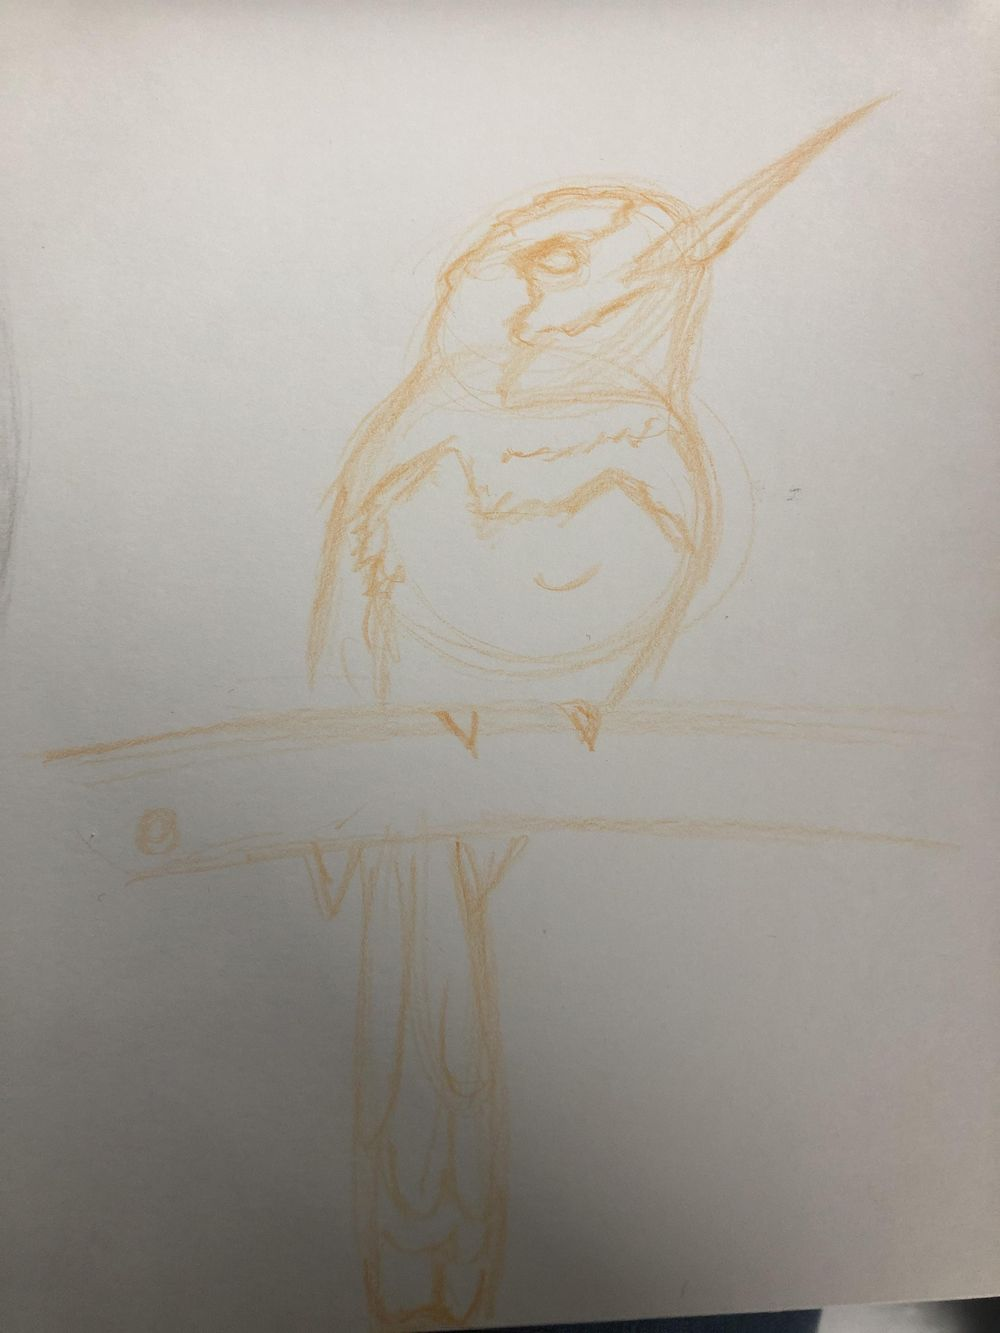 Birb - image 1 - student project